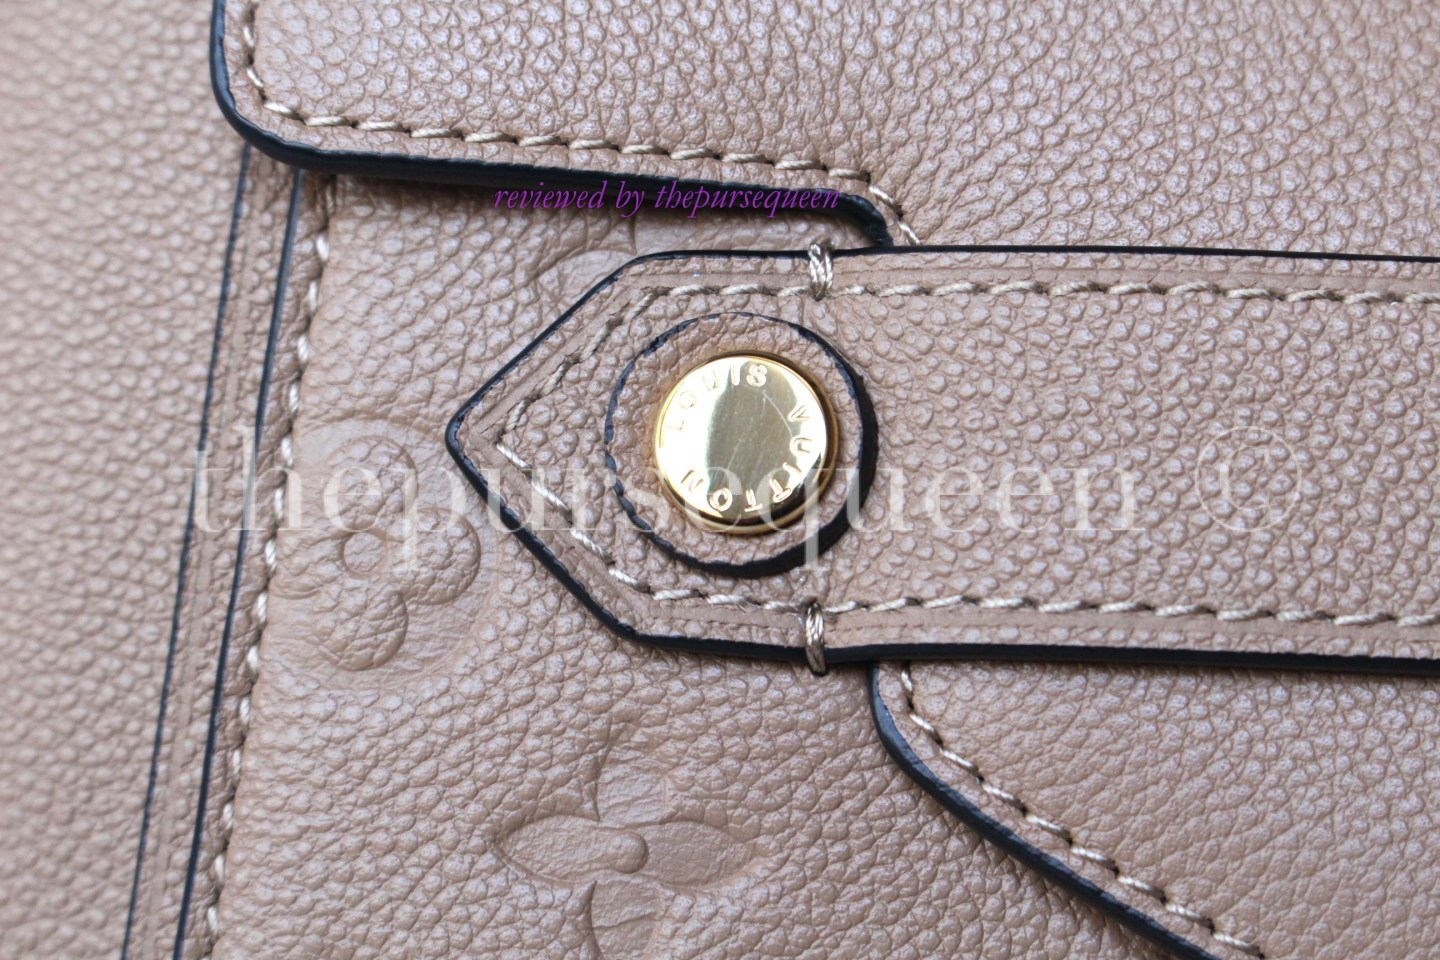 louis vuitton Trocadero empreinte replica authentic review hardware closeup